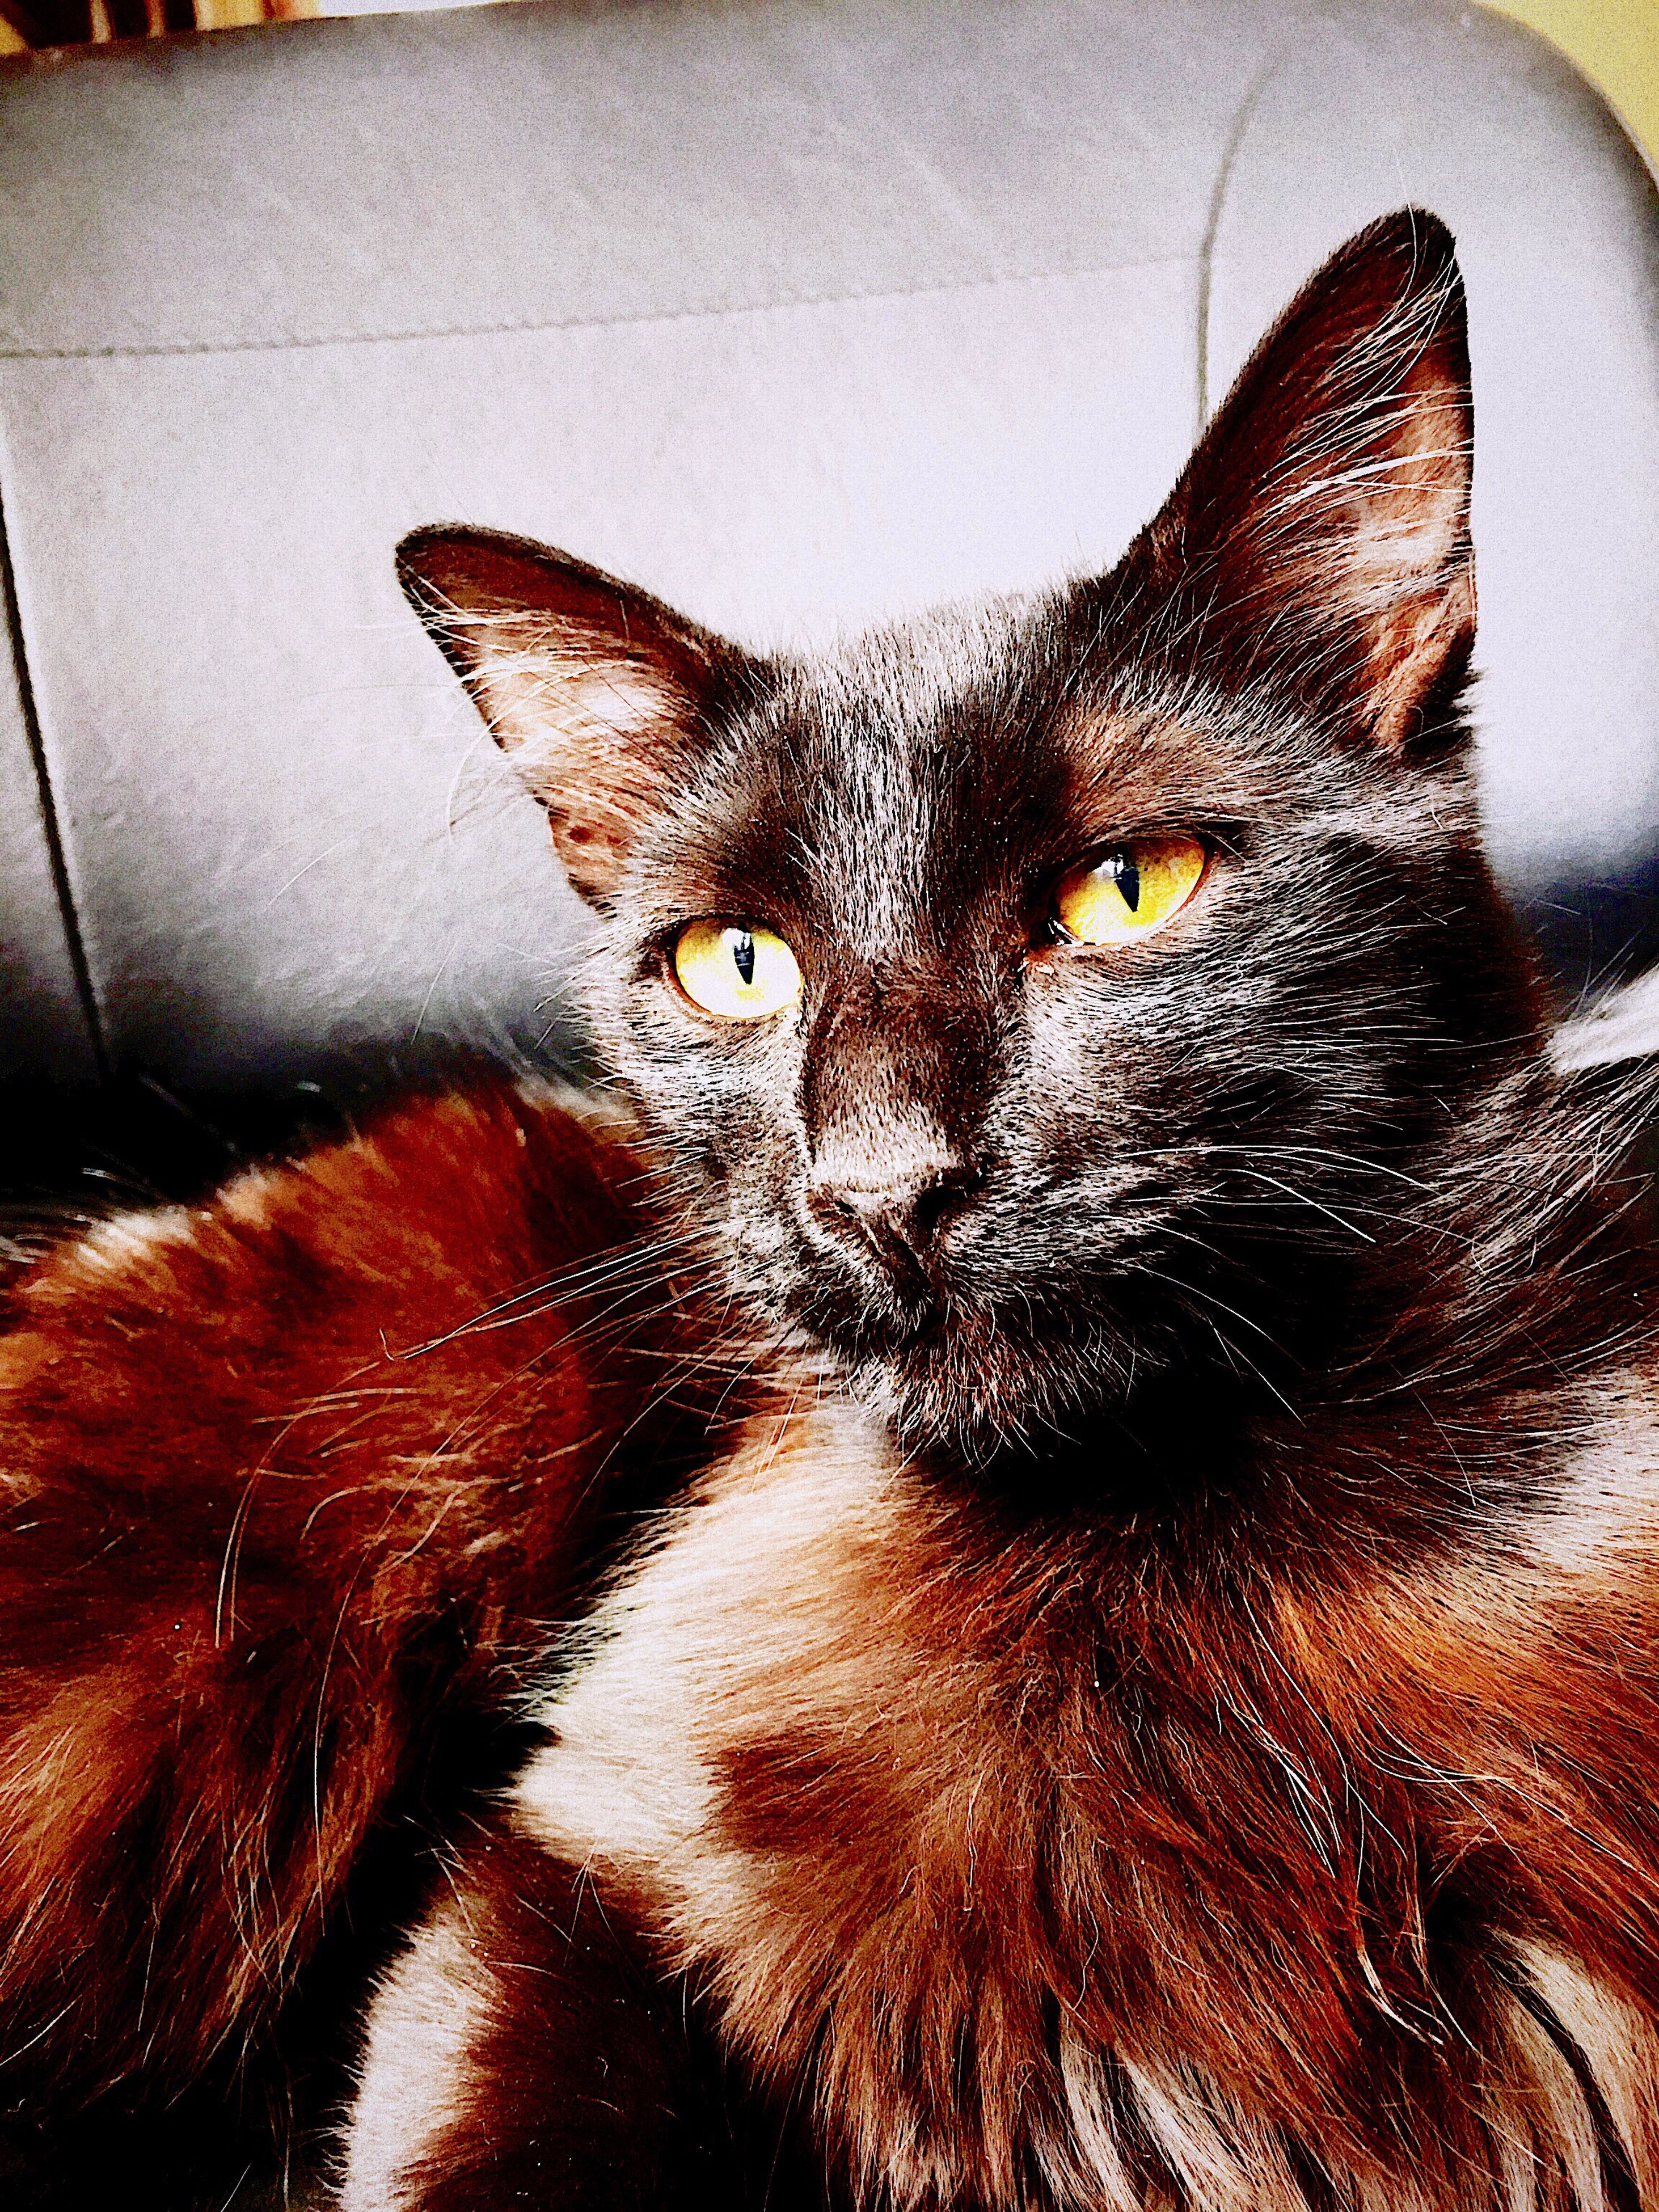 pets, animal themes, one animal, domestic animals, domestic cat, close-up, indoors, animal head, auto post production filter, mammal, feline, cat, looking at camera, resting, whisker, animal eye, focus on foreground, zoology, no people, animal